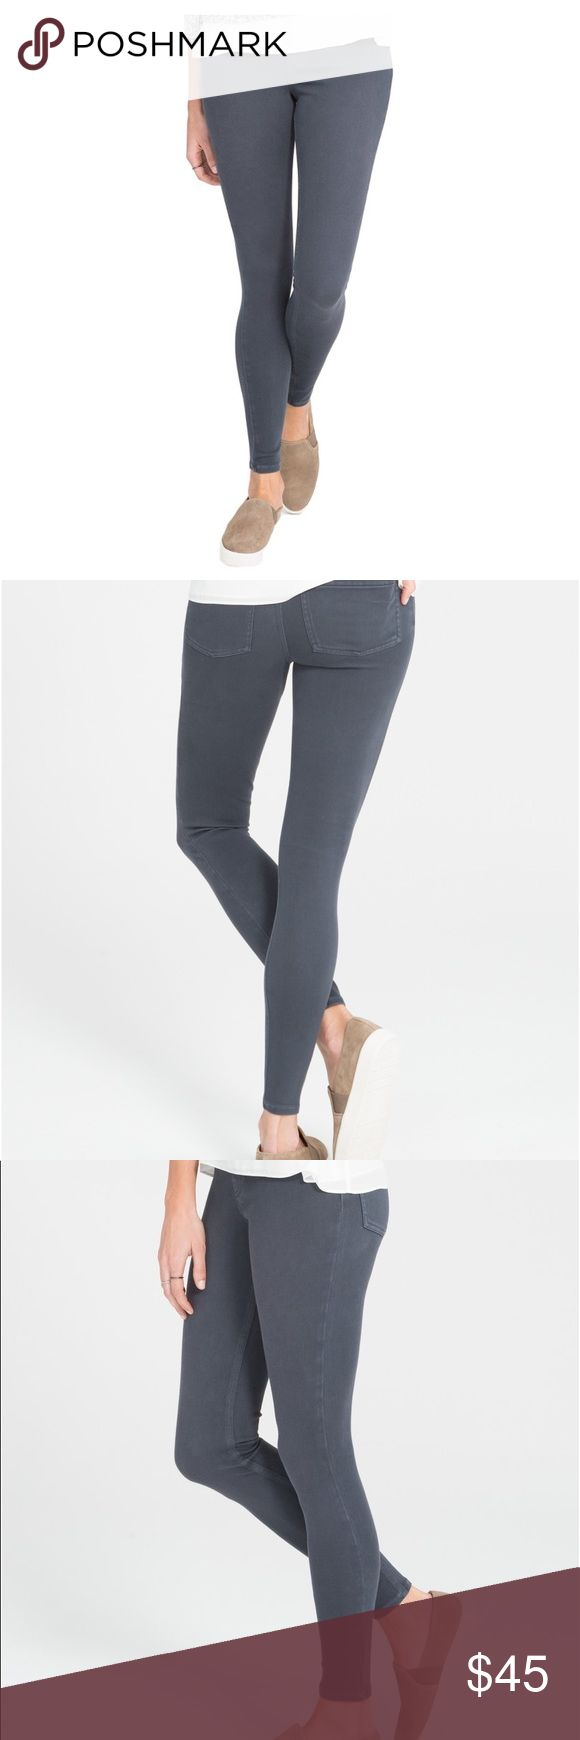 """New Spanx """"Jean-ish Leggings"""" pants, size Medium The slim's built in—Shaping panel targets tummy Faux front pockets and functional back pockets offers the look of a classic 5-pocket jean Designed to hit at your natural waist for great coverage and no muffin top! Inseam: 28.5"""" SPANX Pants Leggings"""